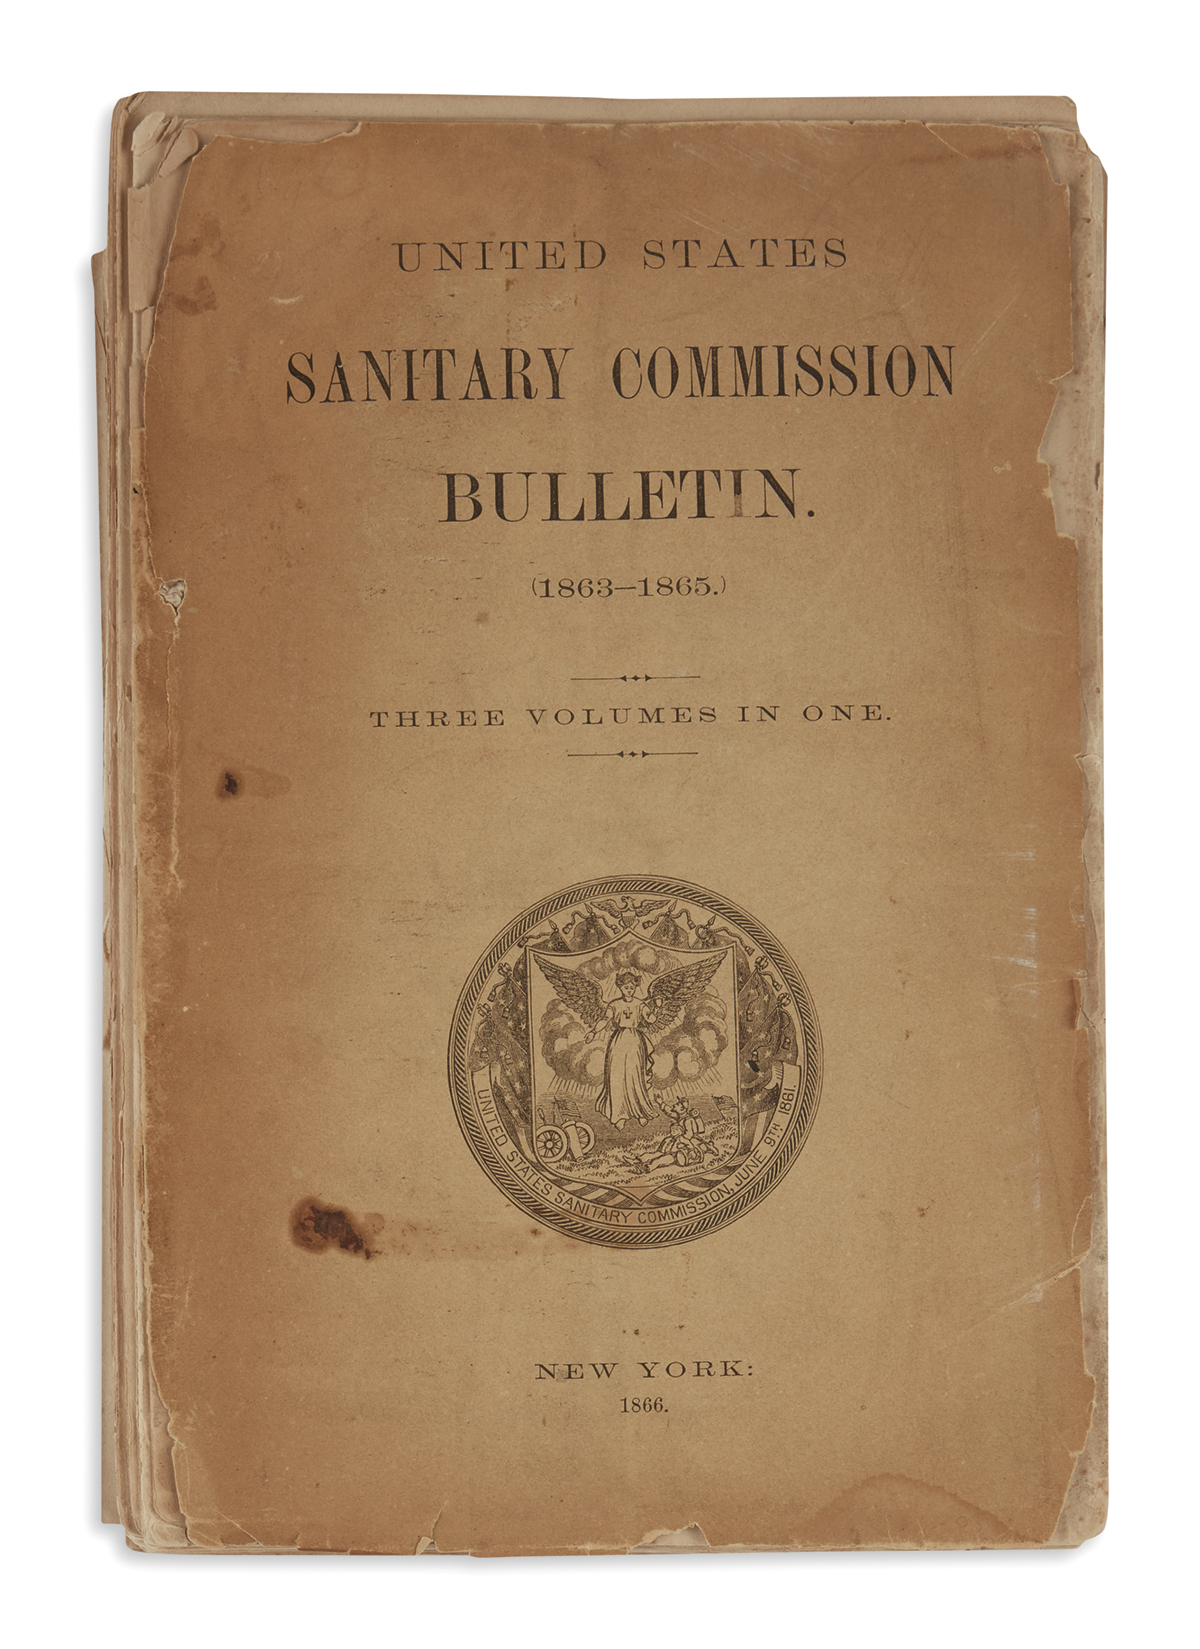 (BOOKS-AND-PAMPHLETS)-United-States-Sanitary-Commission-Bull